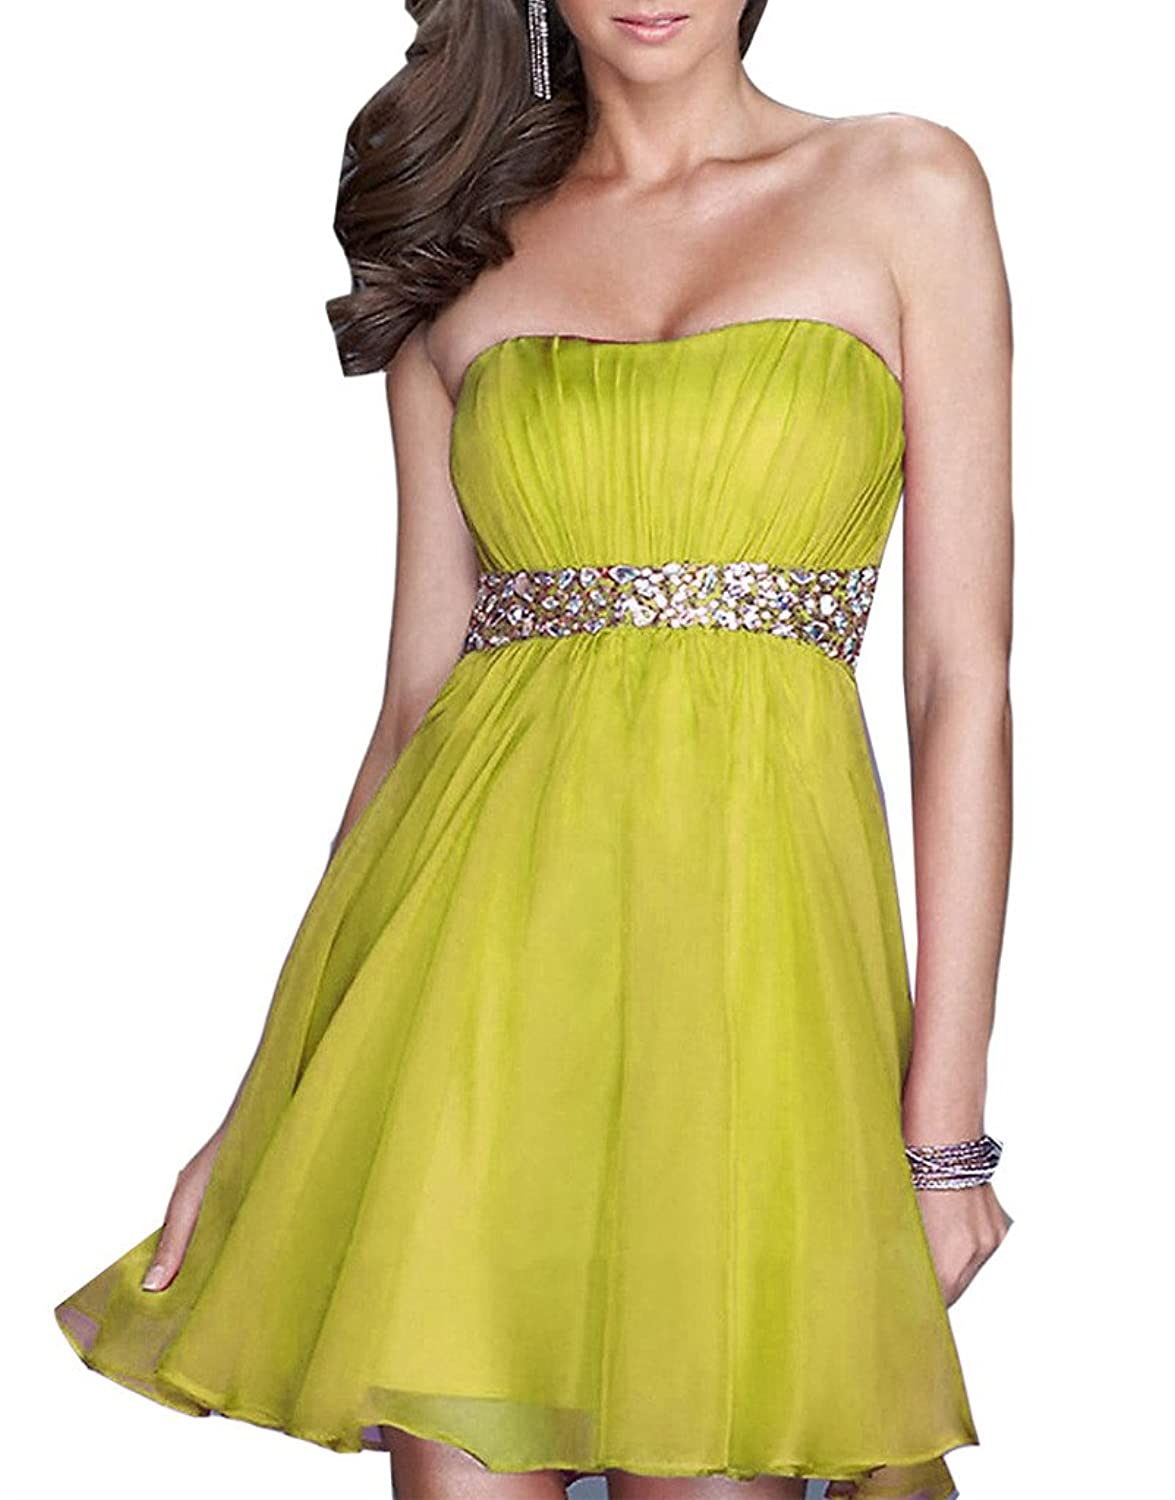 Emmani Women's Strapless Crystal Beads Bling Short Homecoming Party Dresses